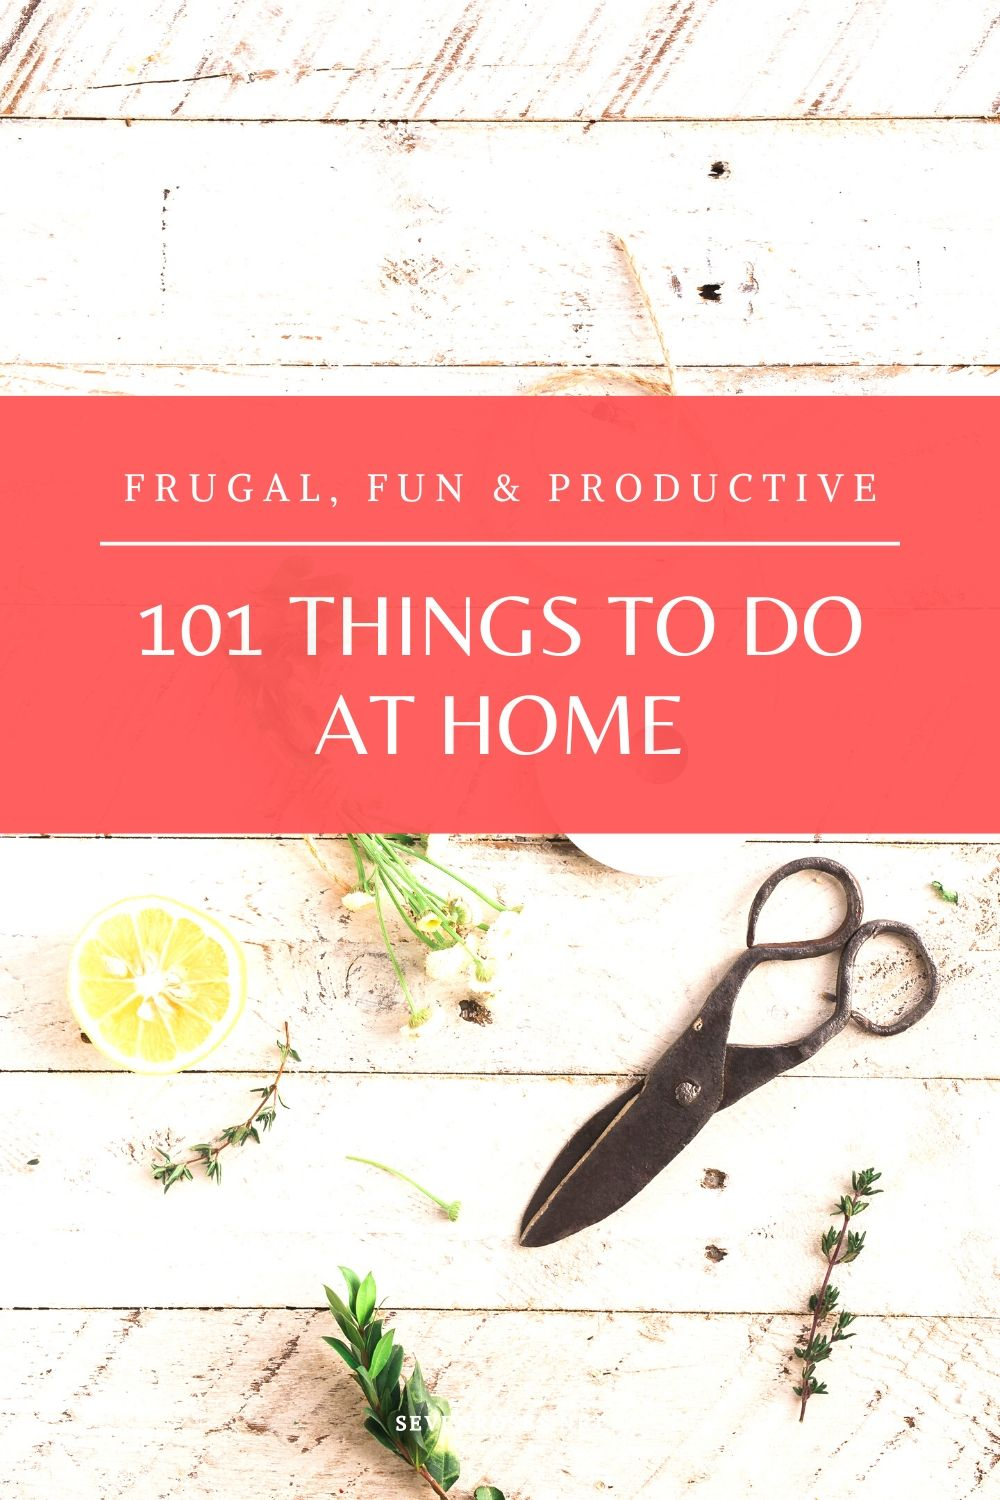 101 things to do at home